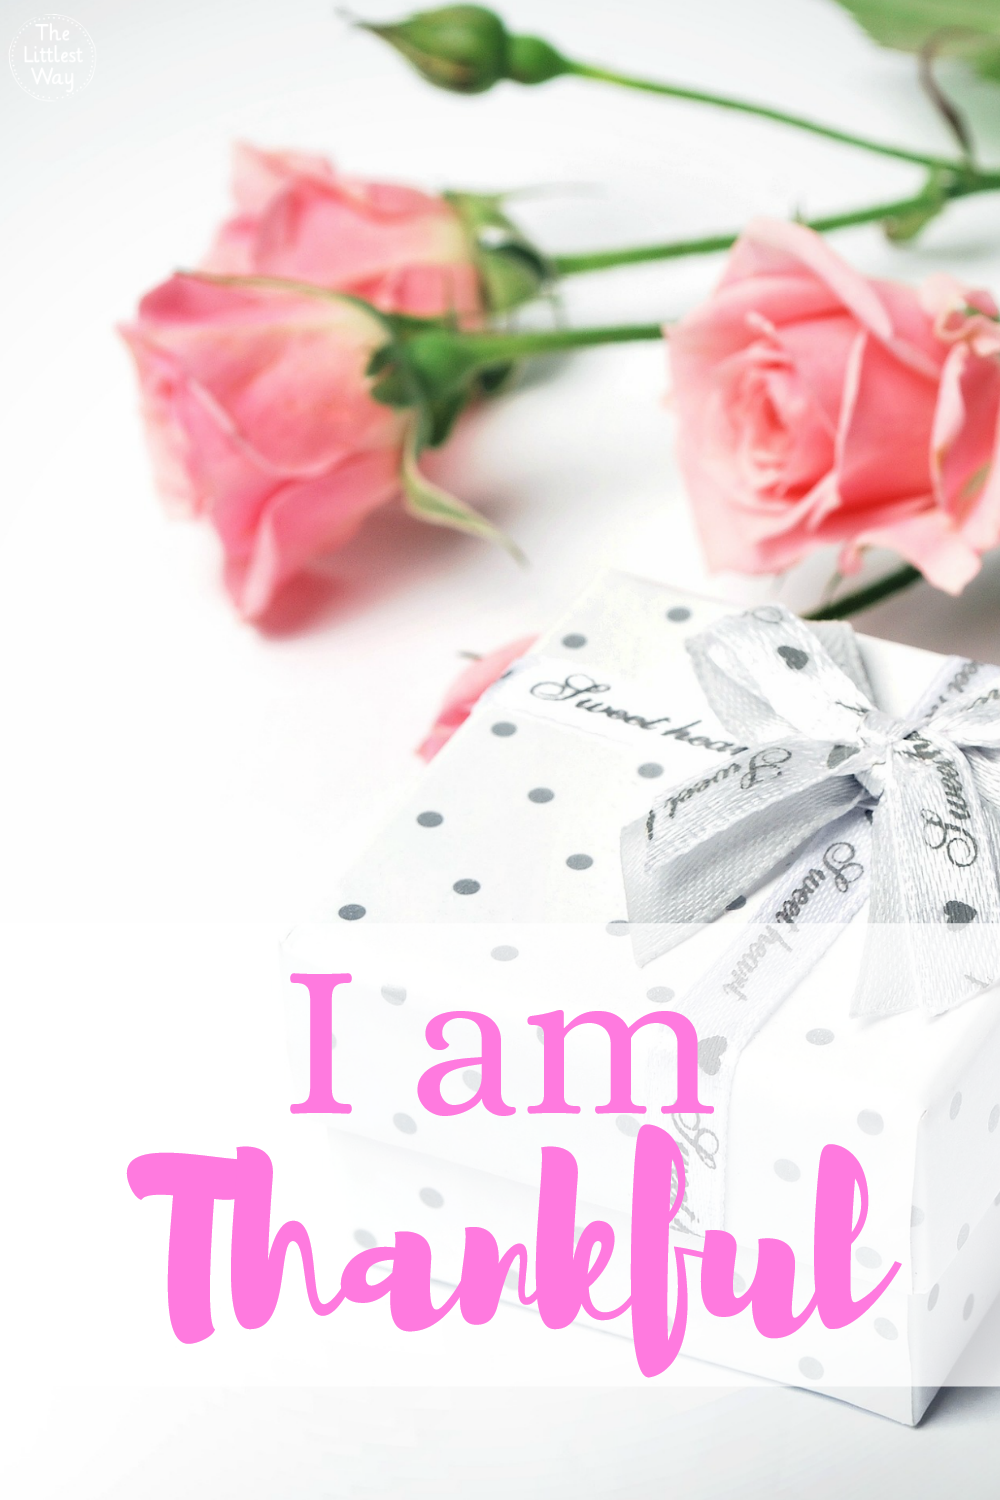 Daily Affirmations: I am thankful can be a life changing affirmation to change your thinking.